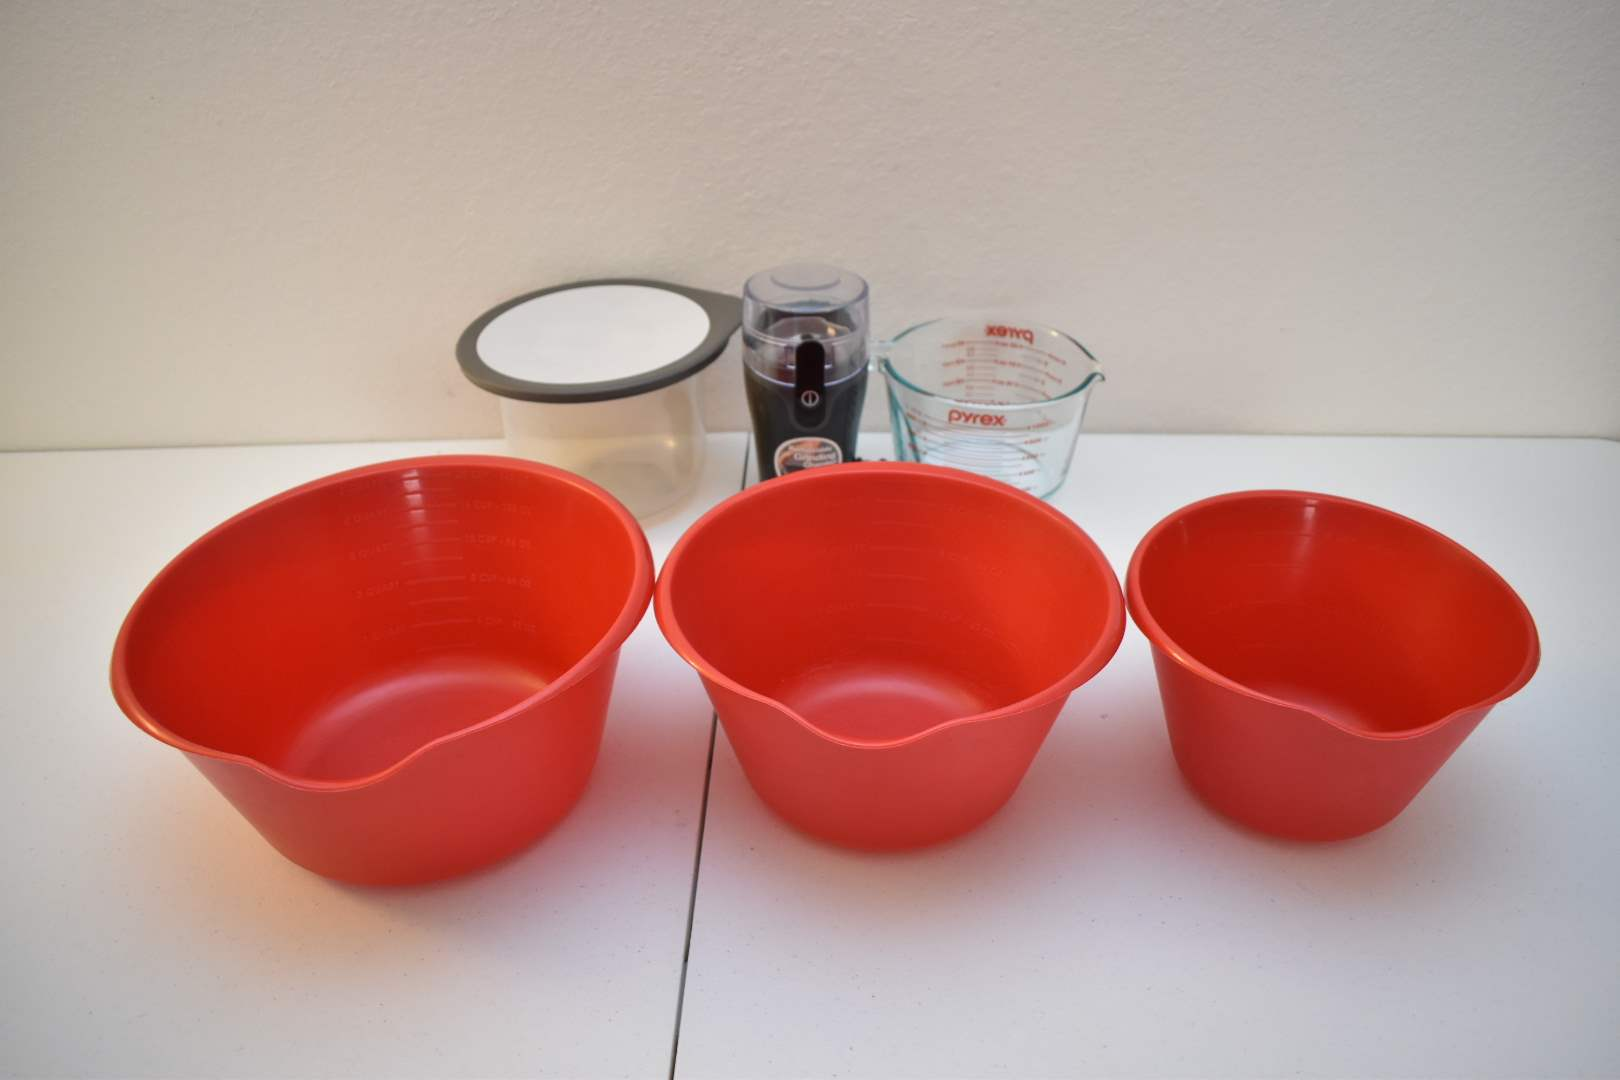 Mixing Bowls, Pyrex Measuring Cup, Coffee Grinder, Rubbermaid